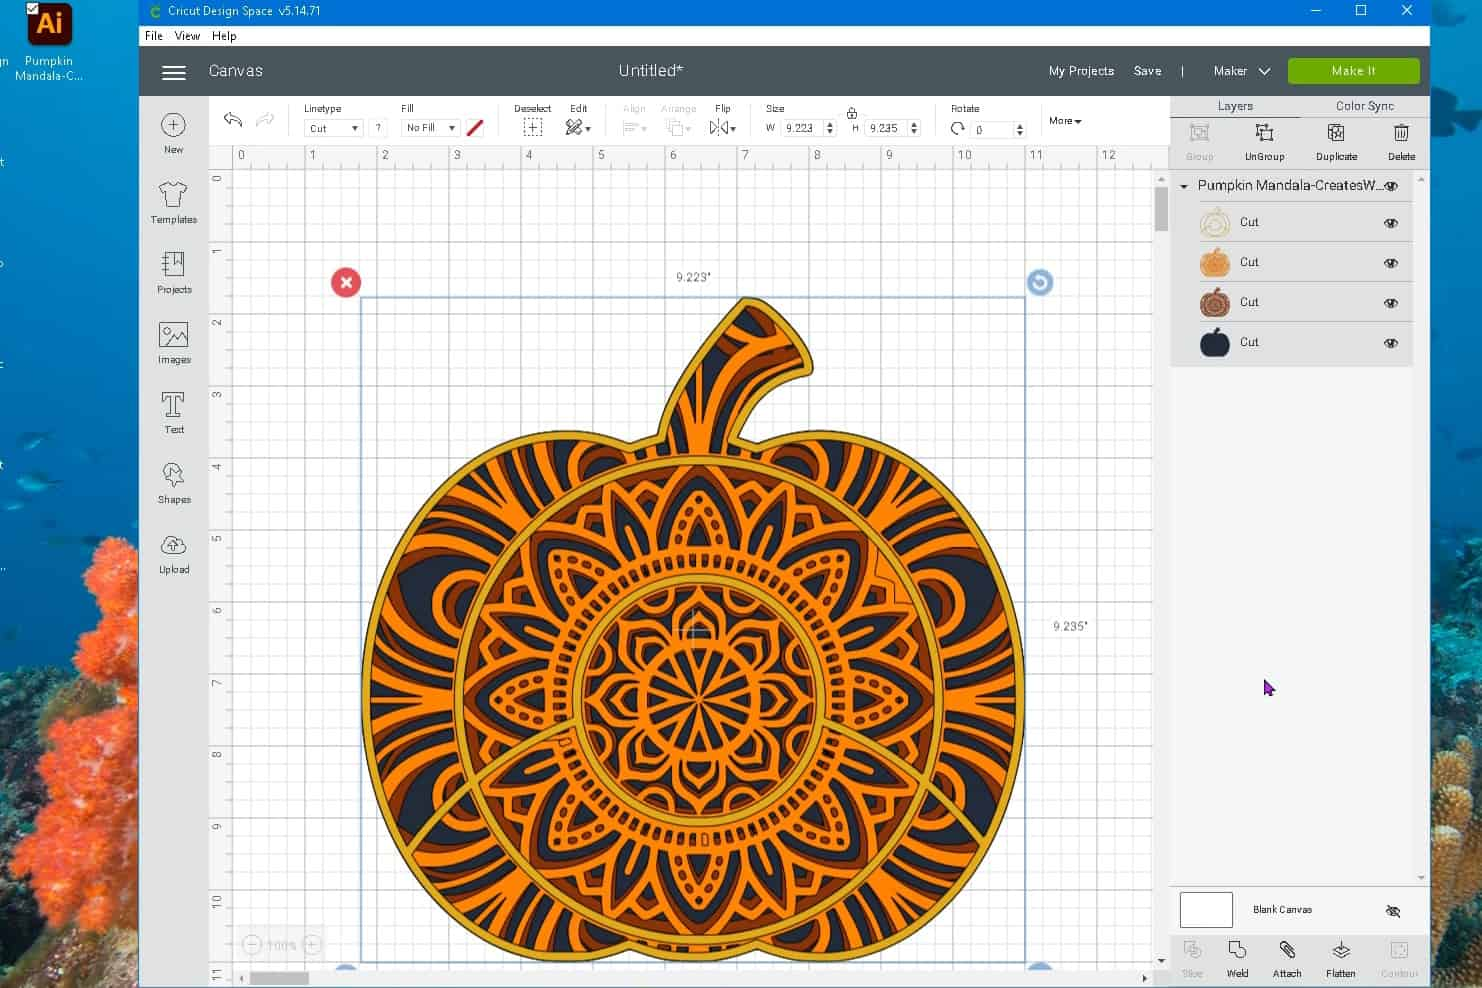 uploaded free svg file into cricut design space